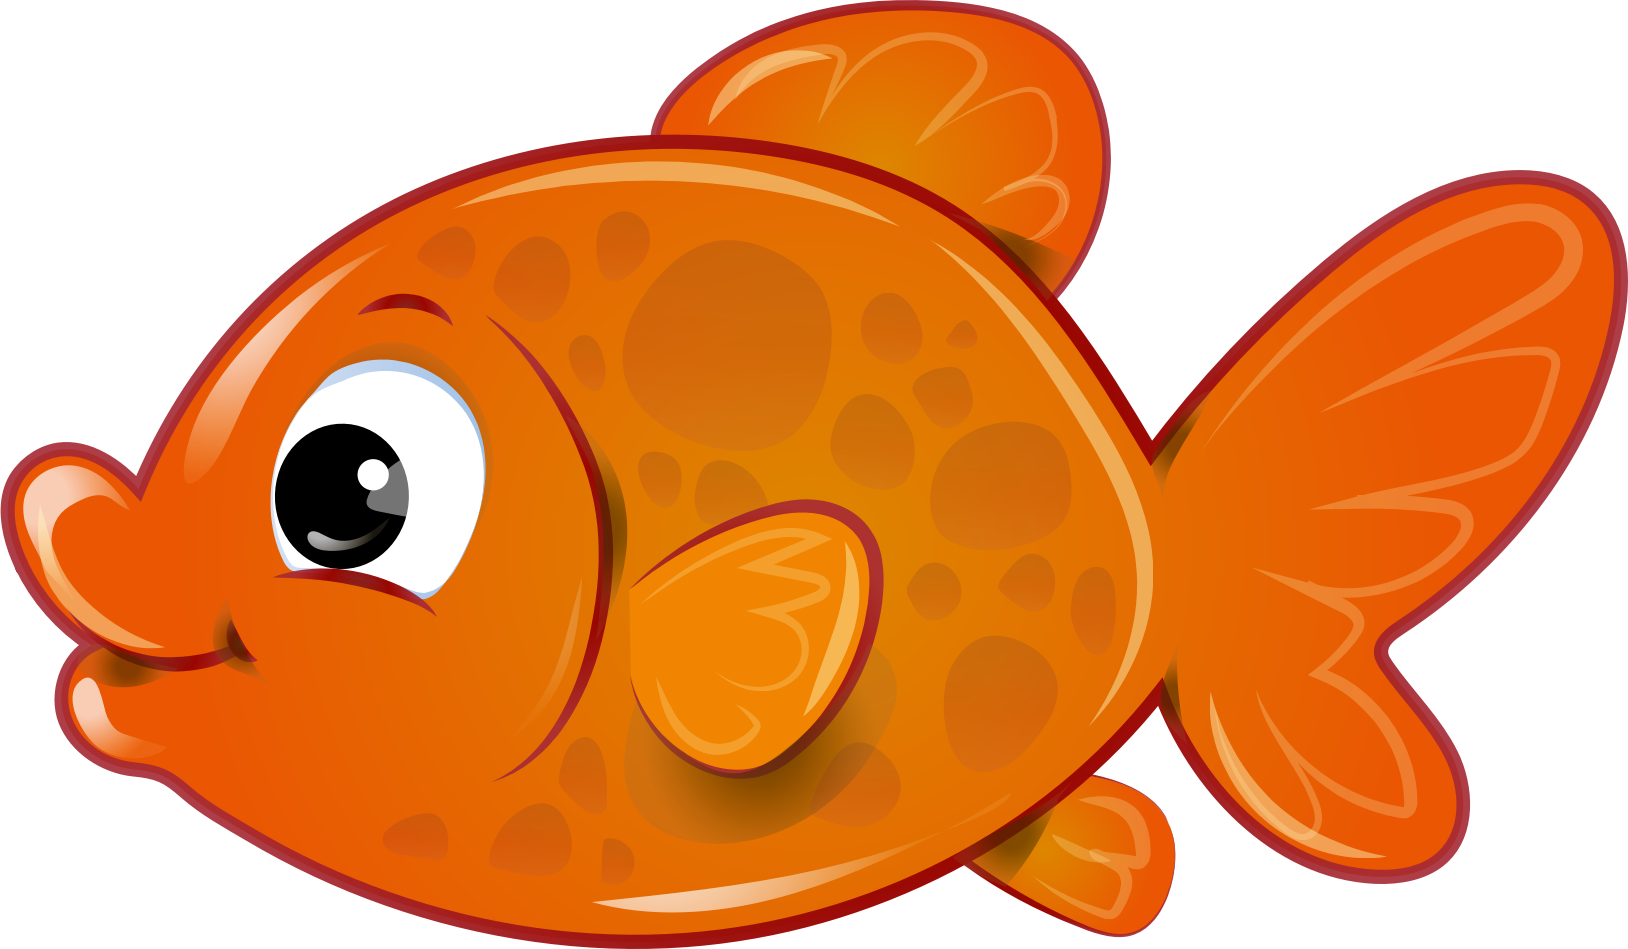 kahlenstein clipart fish